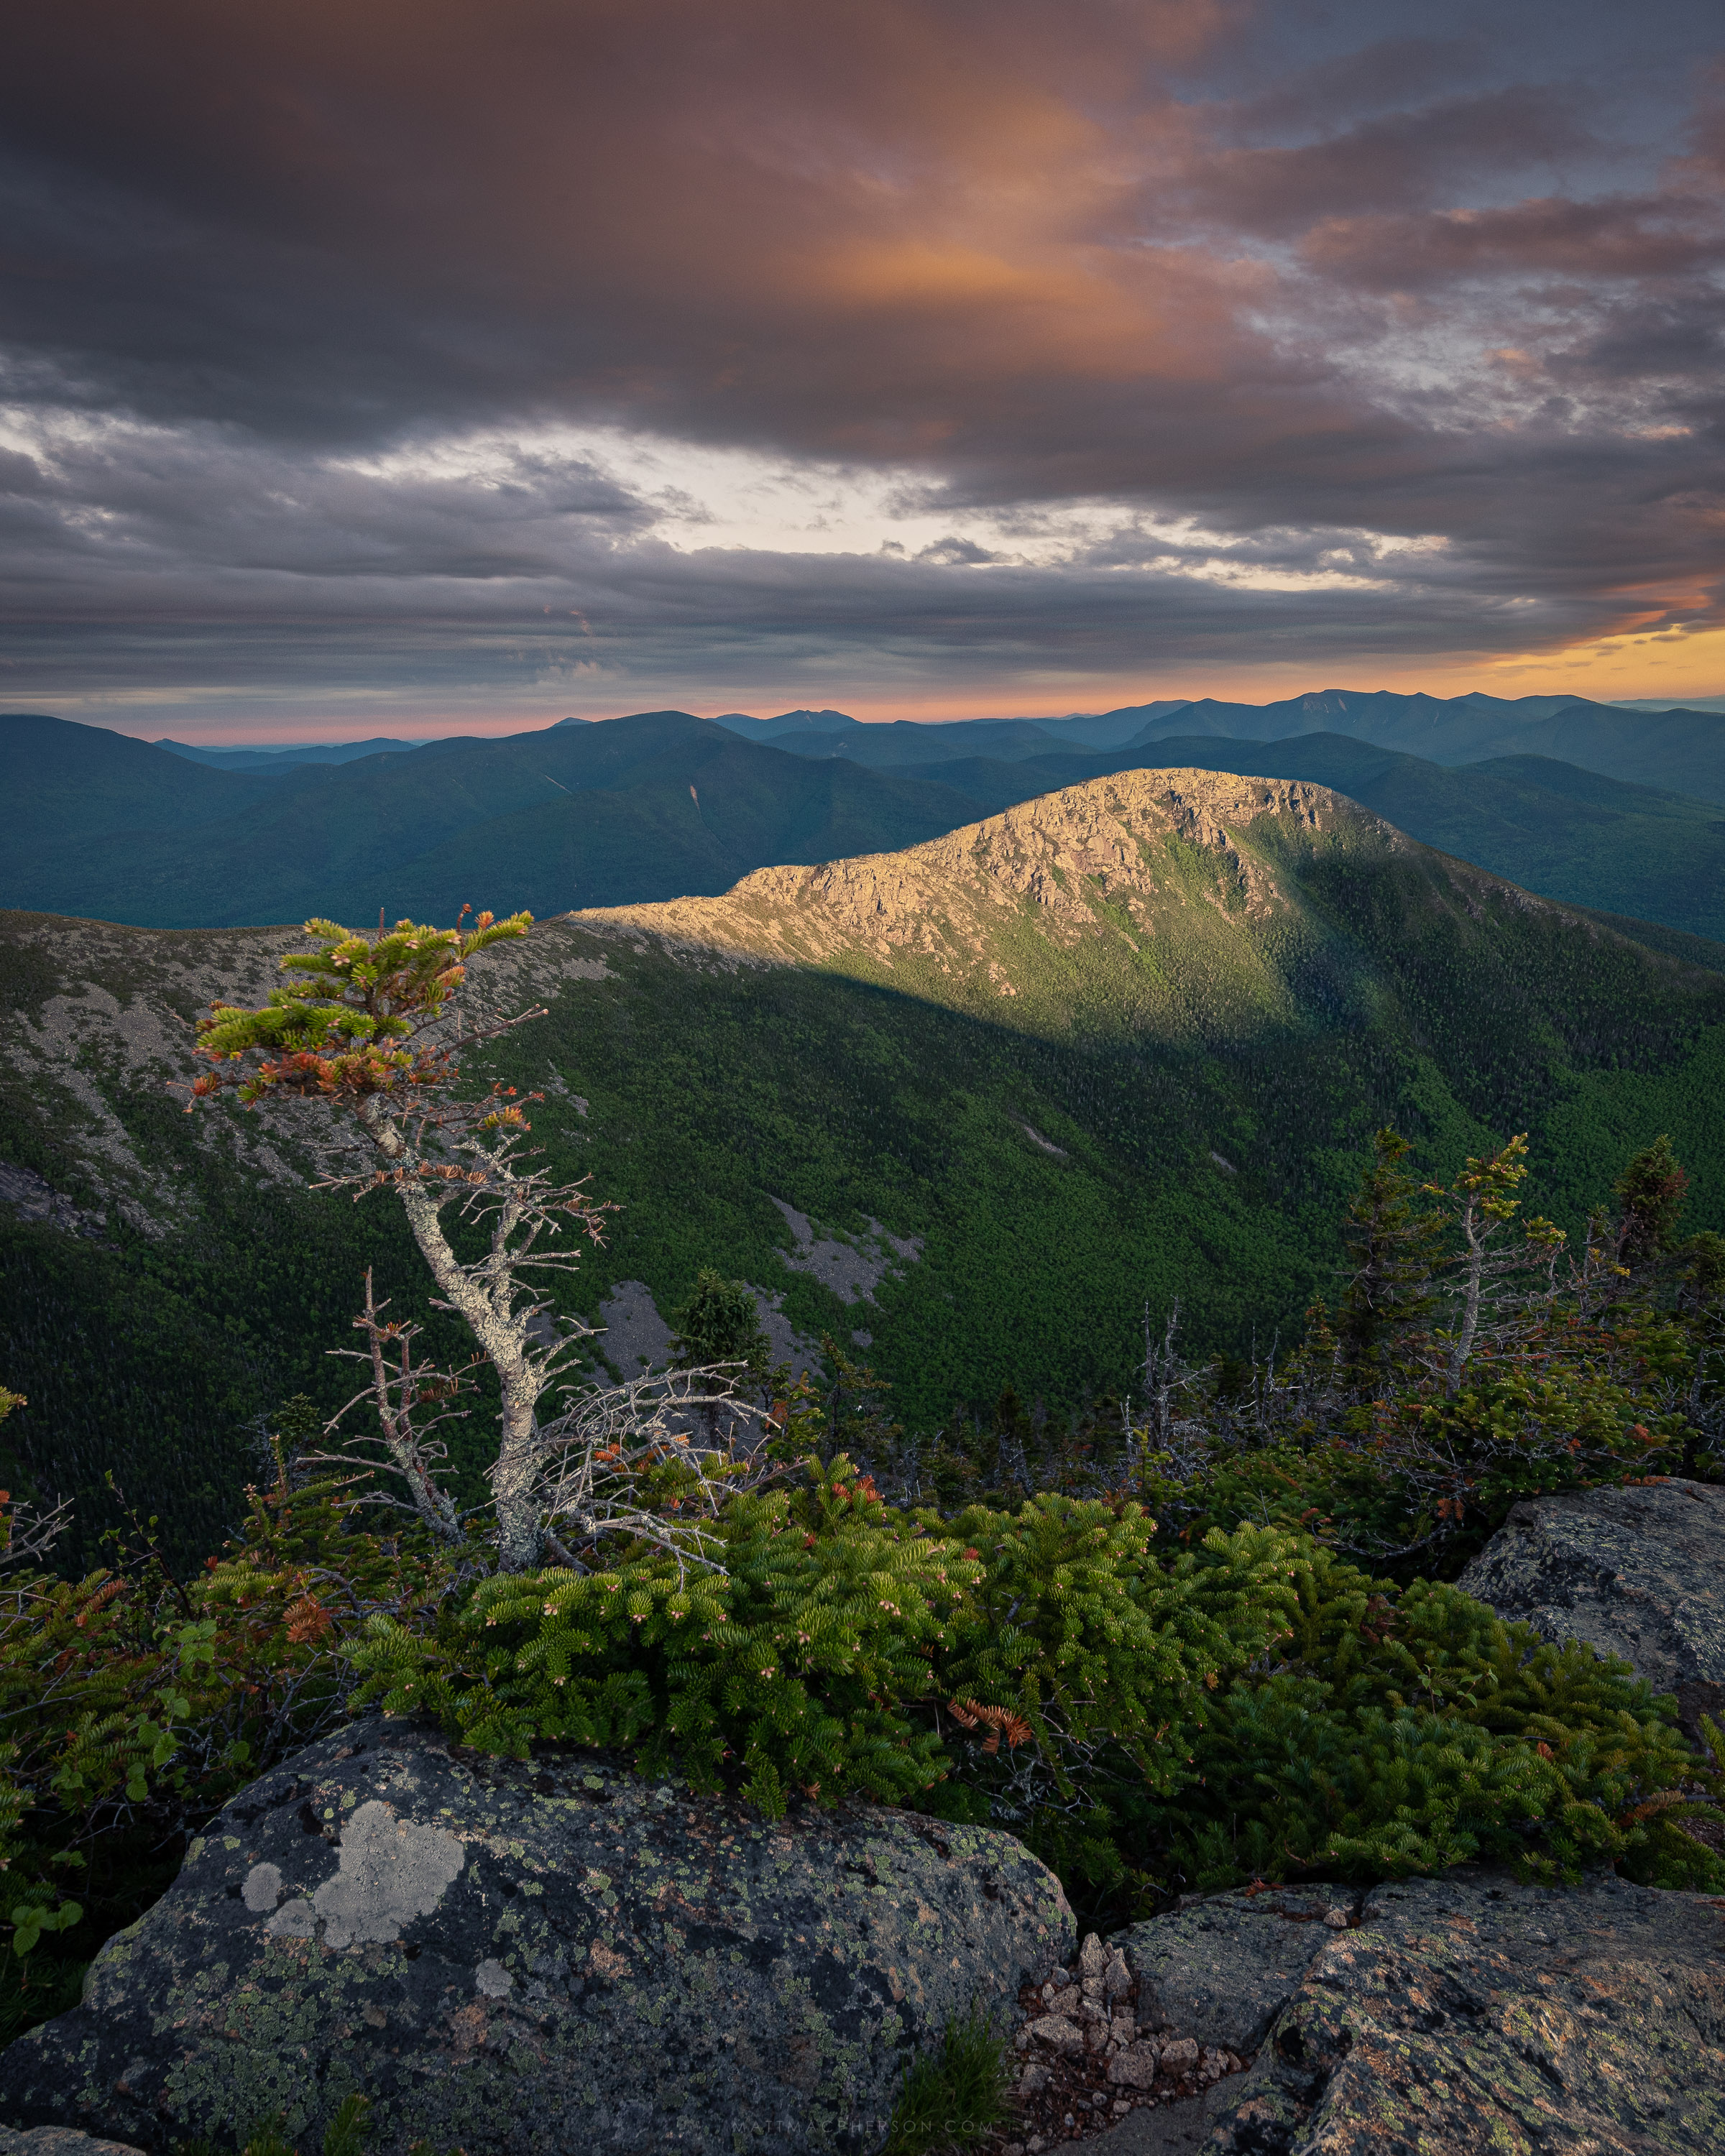 Bondcliff lit up by the last moments of sunset, New Hampshire [OC][3000x2000]